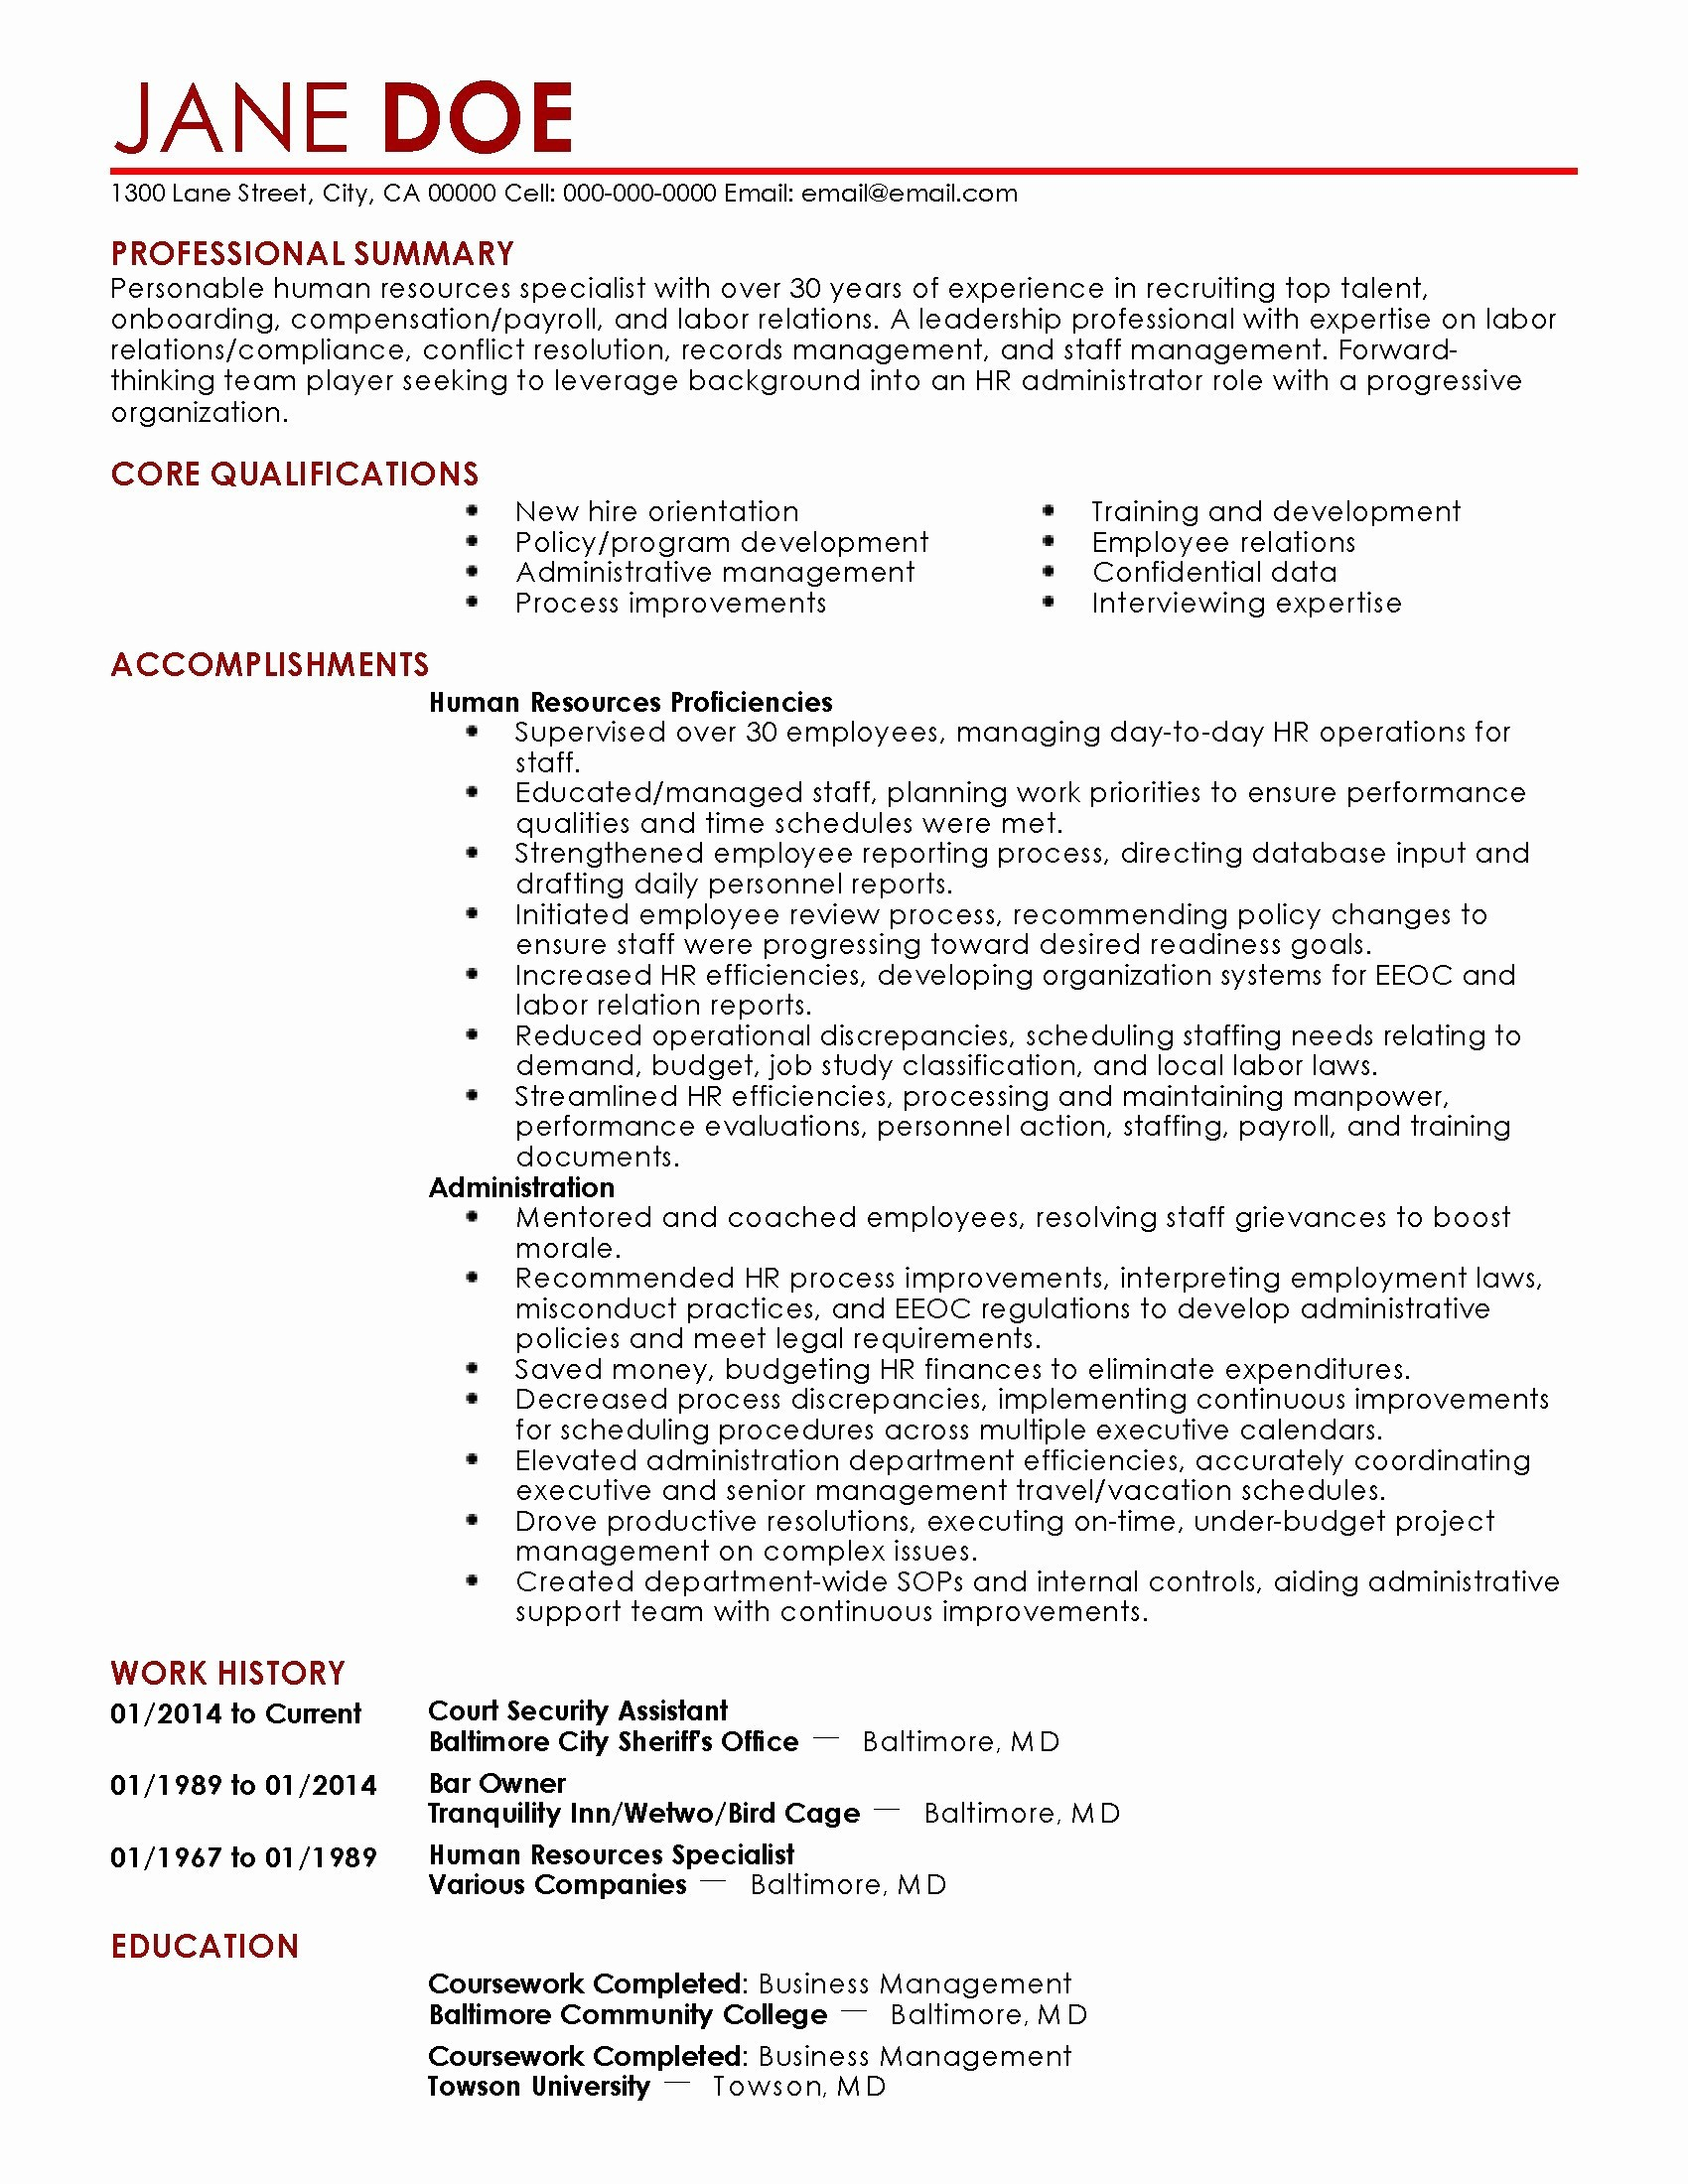 resume template for medical assistant Collection-Medical assistant resume template lovely medical assistant resumes new medical resumes 0d bizmancan 16-c